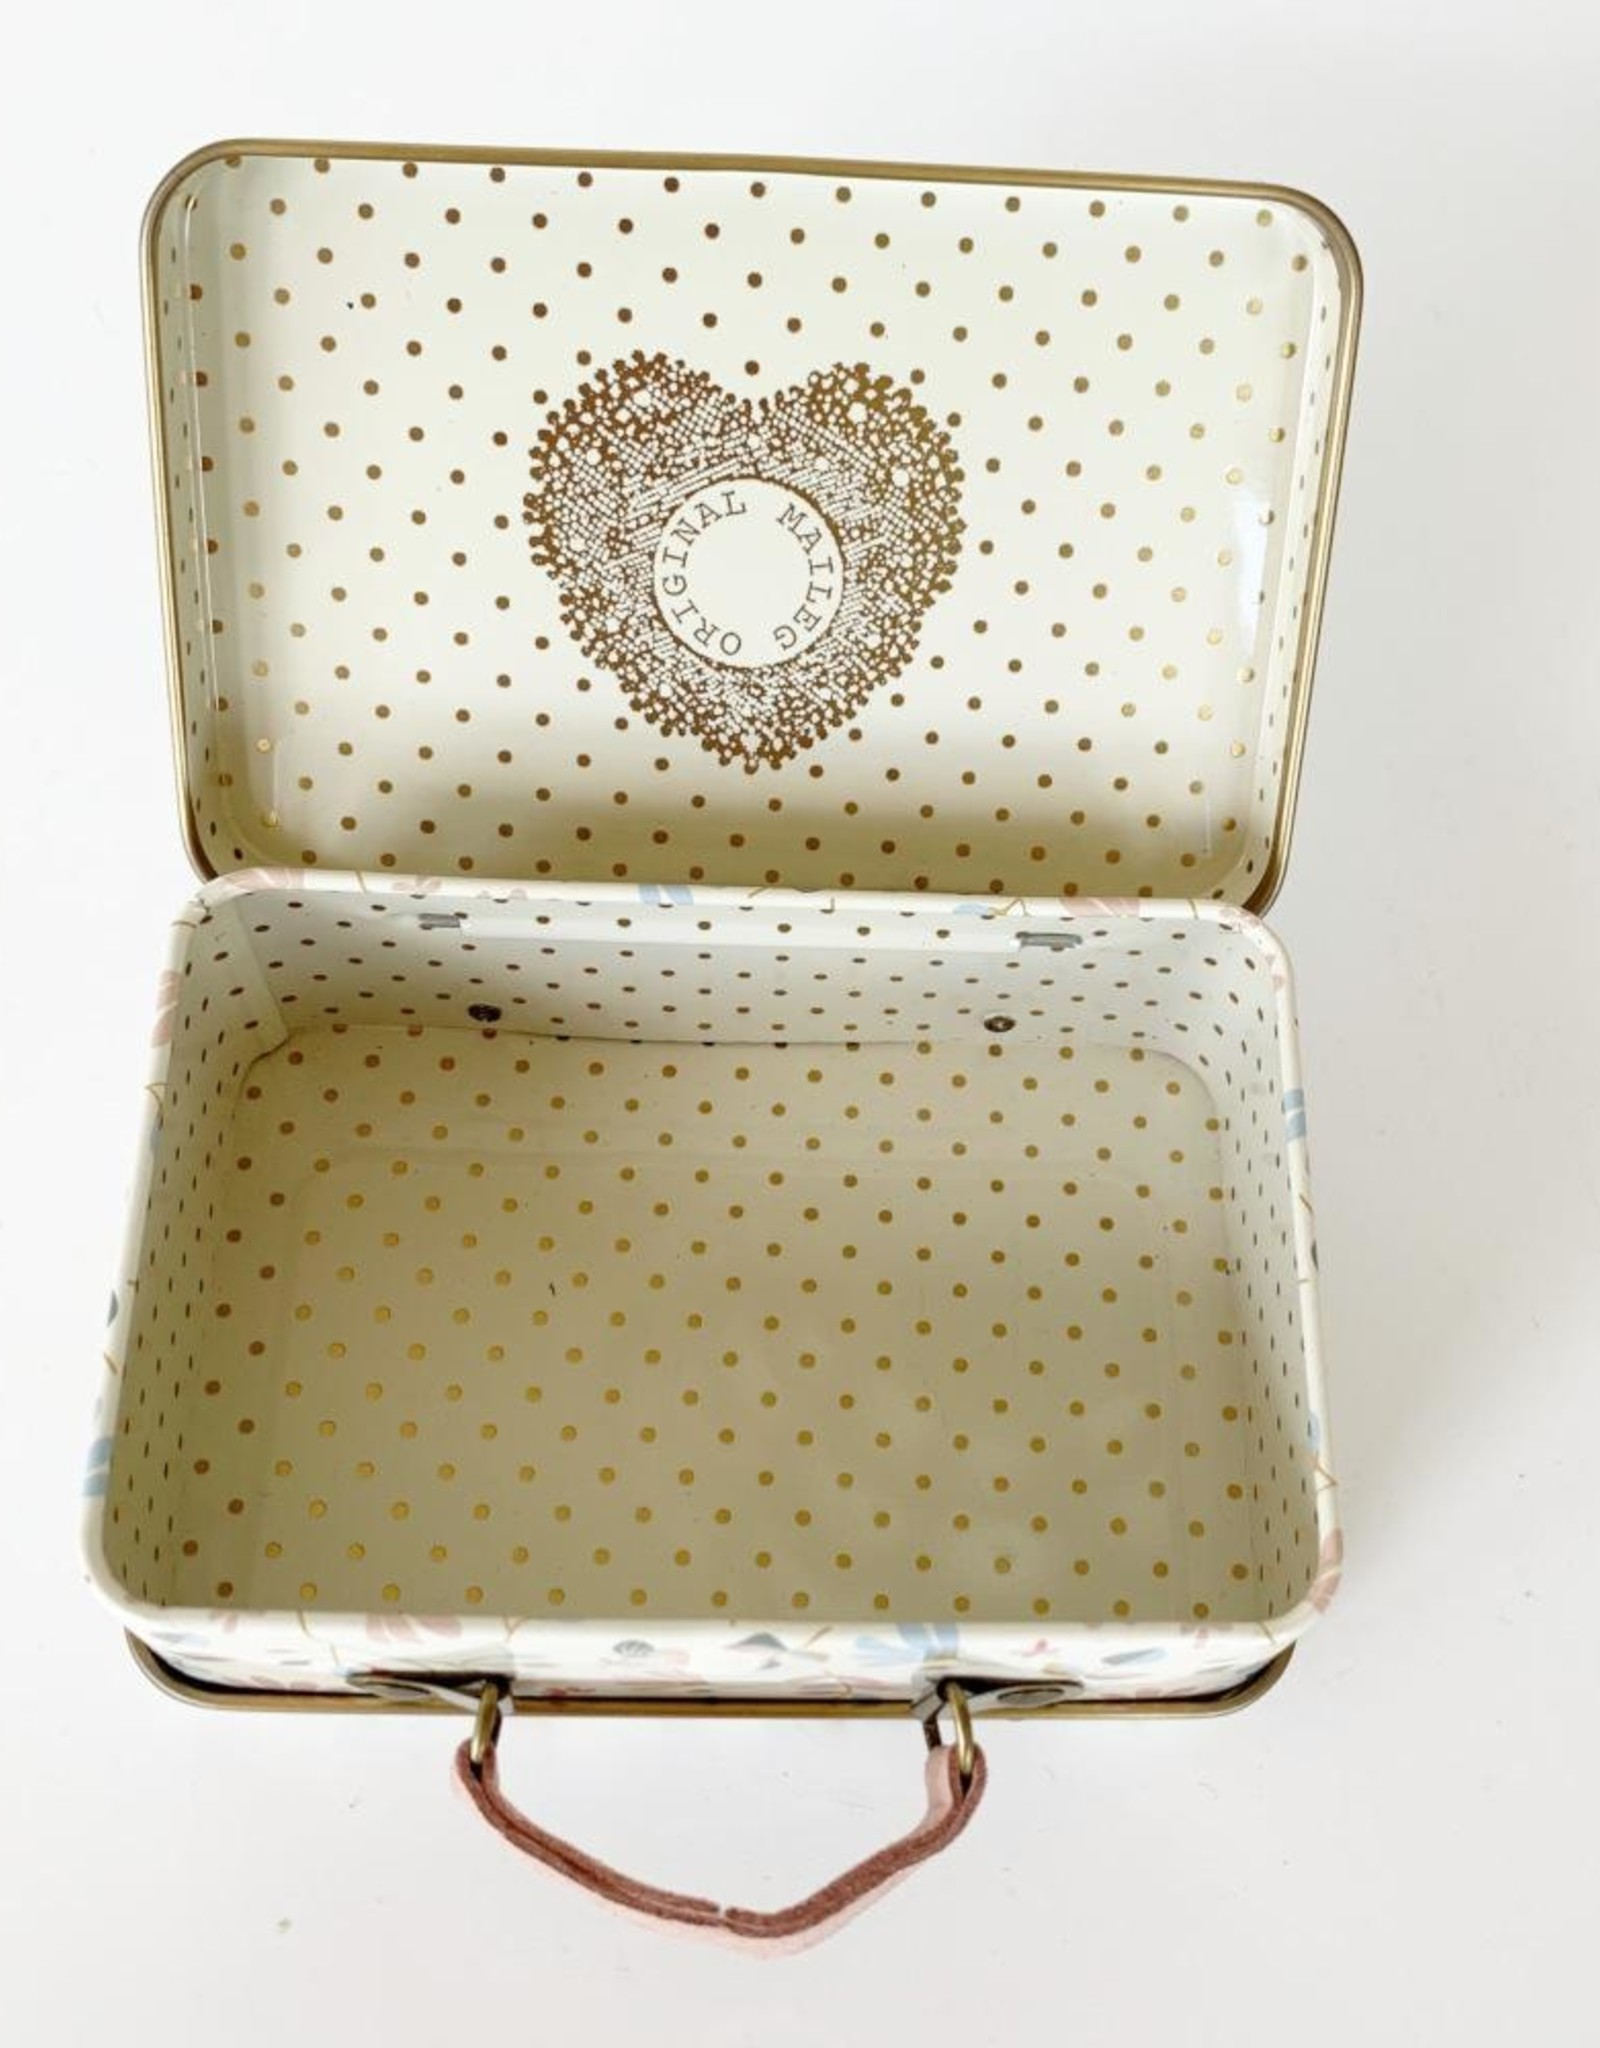 Maileg Suitcase & Cakes For Two